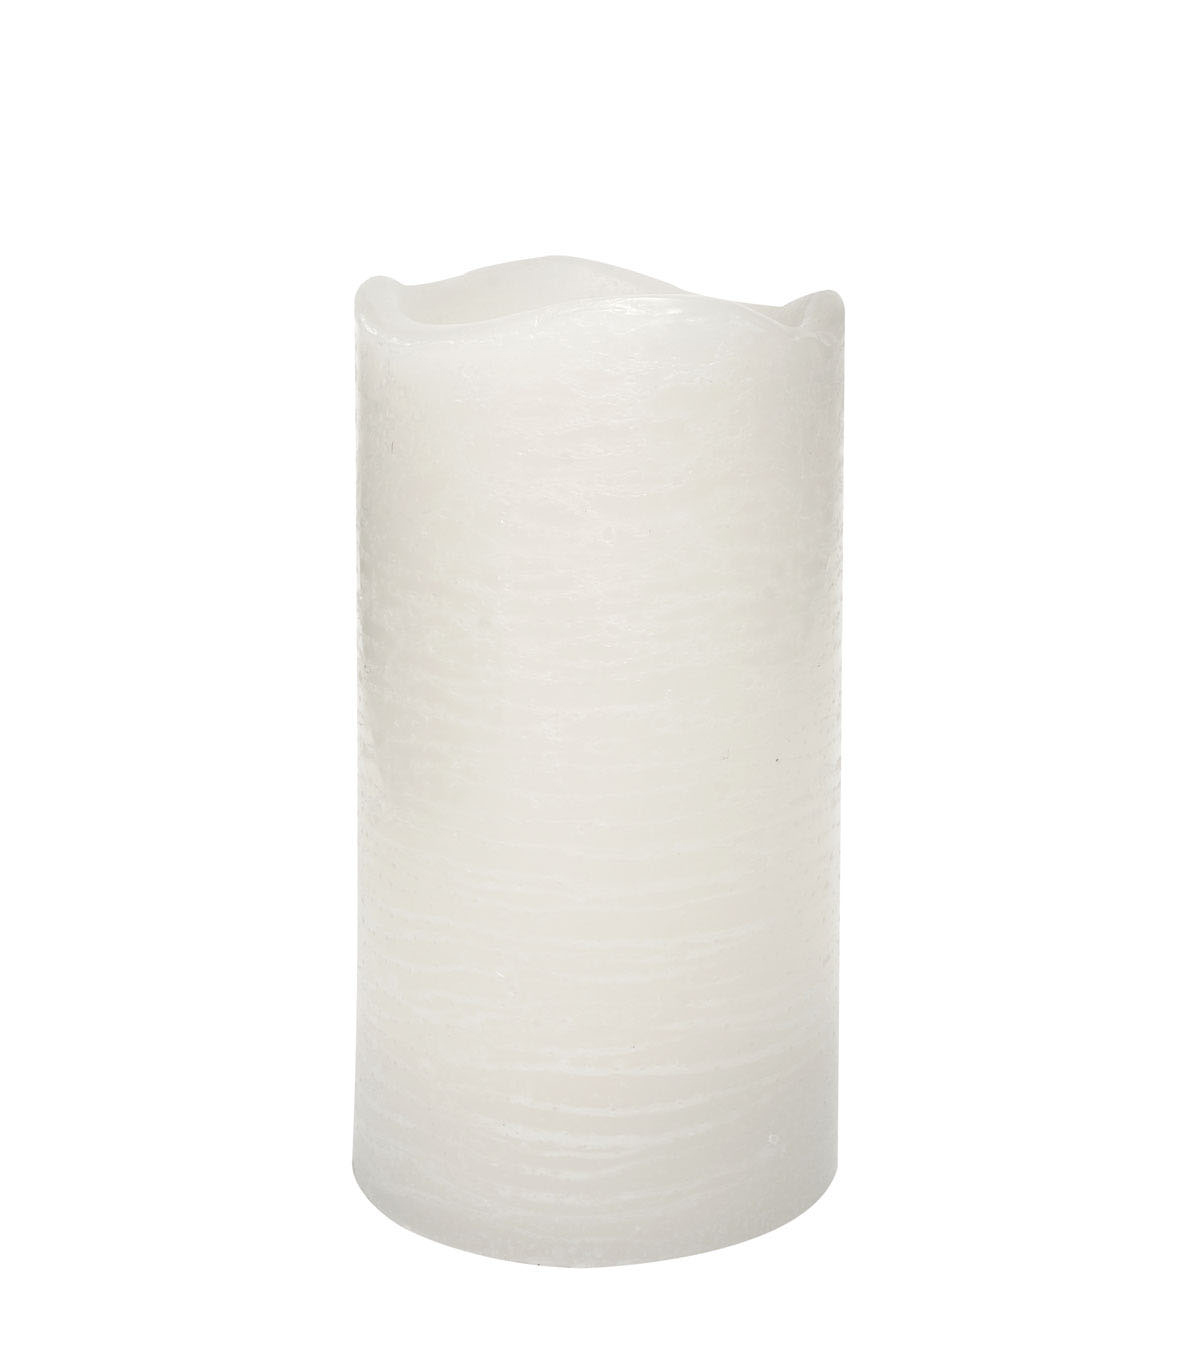 Hudson 43 Candle & Light Collection 3X6 White Rustic Pillar